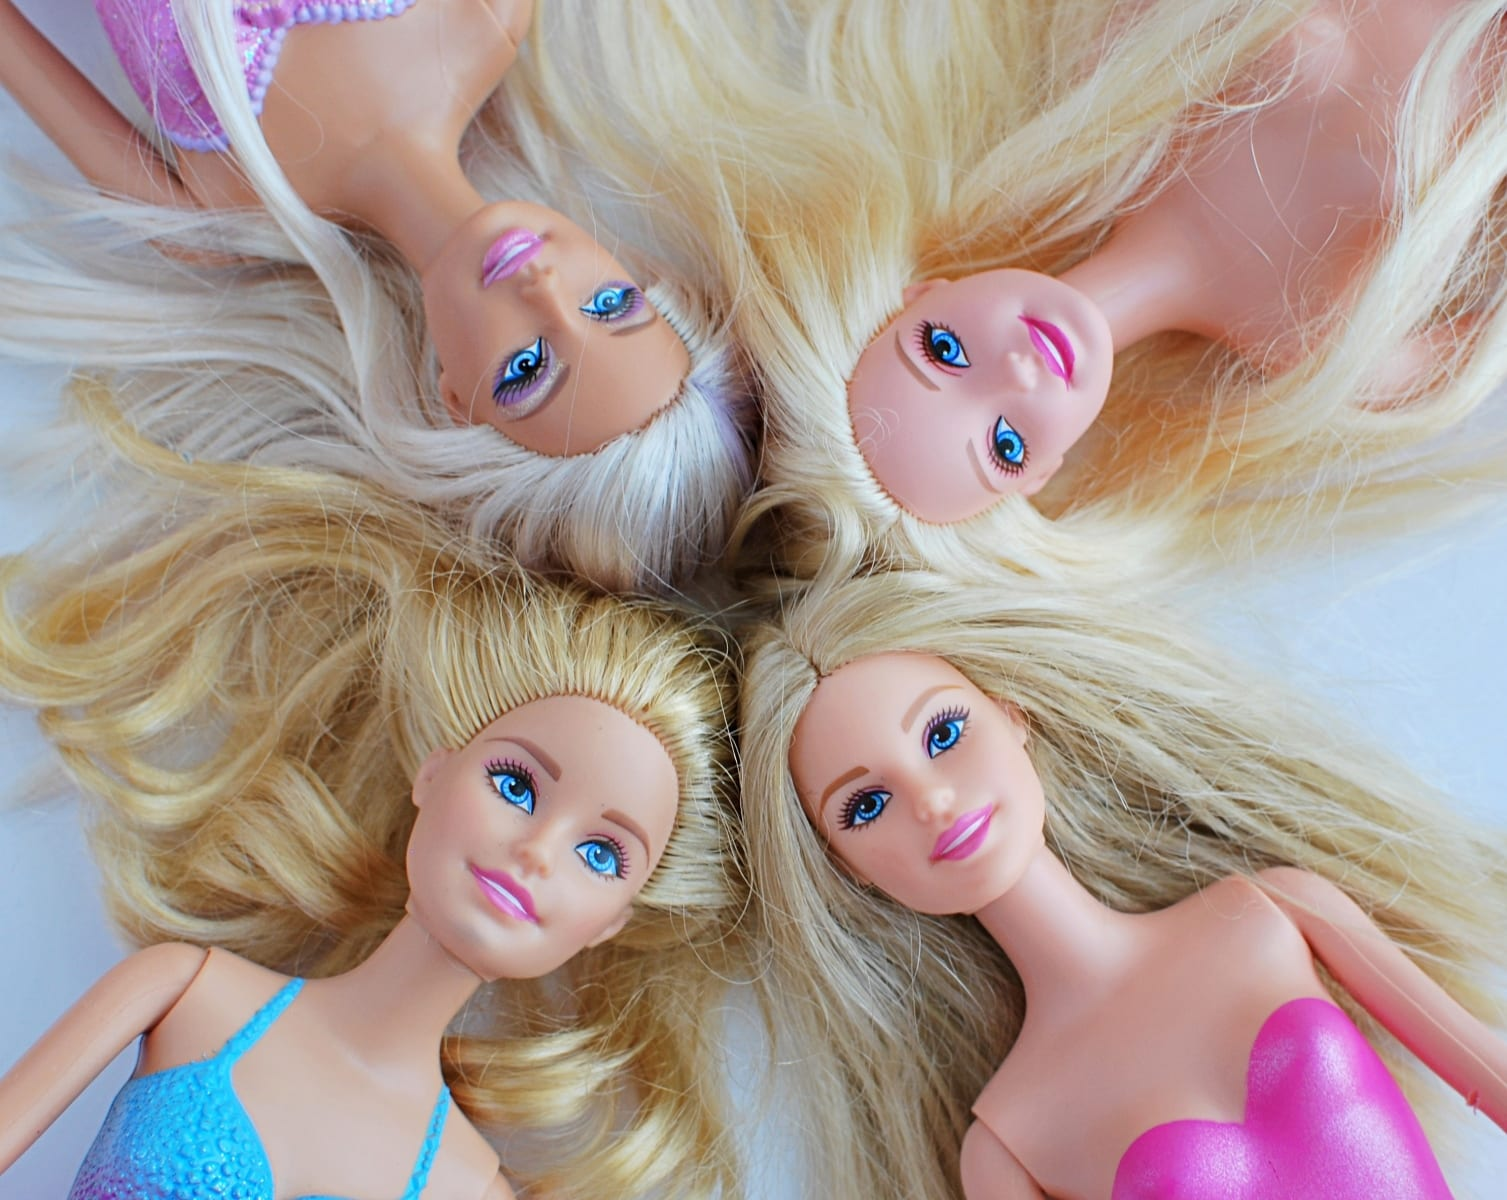 Barbie dolls with blonde hair. Popular toys for girls, May 14, 2018 in Vilnius, Lithuania.